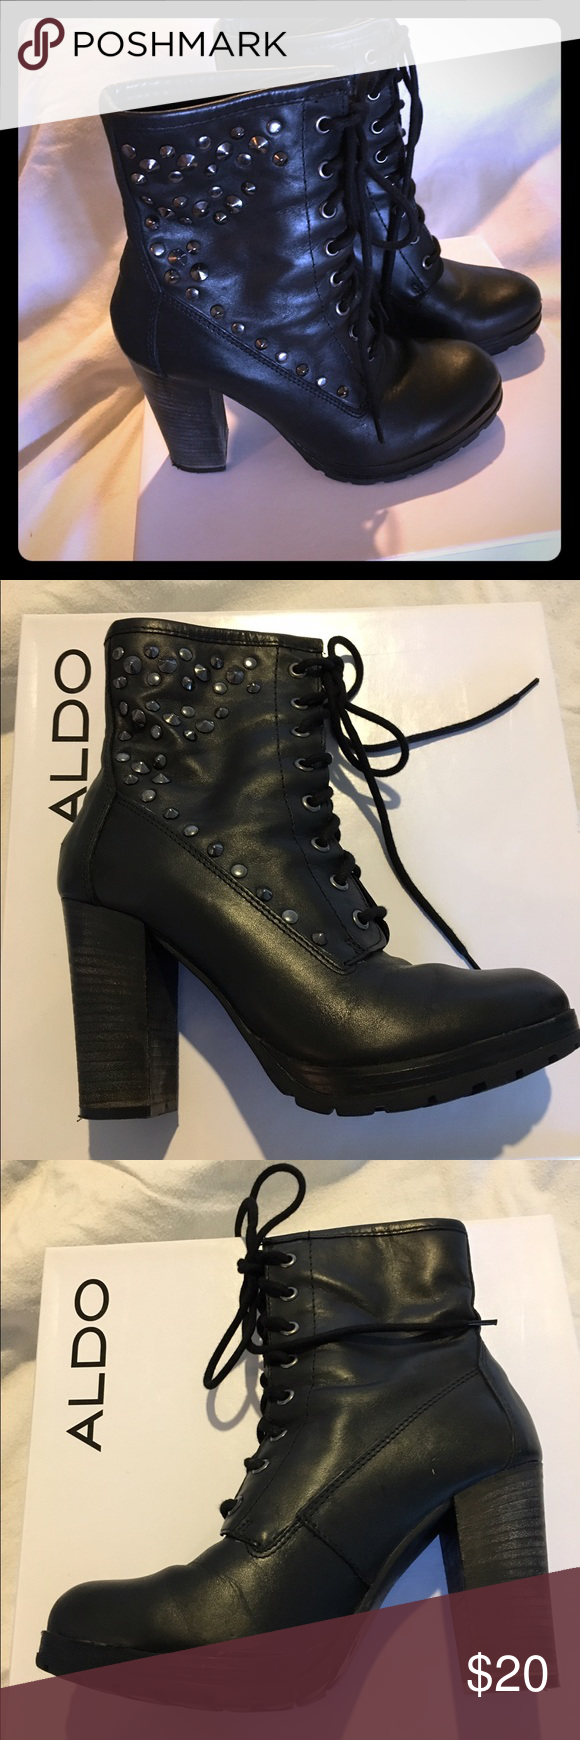 Aldo Binzarta Studded Black Leather Boots Size 8 Hot lace-up leather boots that you can dress up or dress down. 3 3/4 inch heel. GUC ALDO Shoes Lace Up Boots